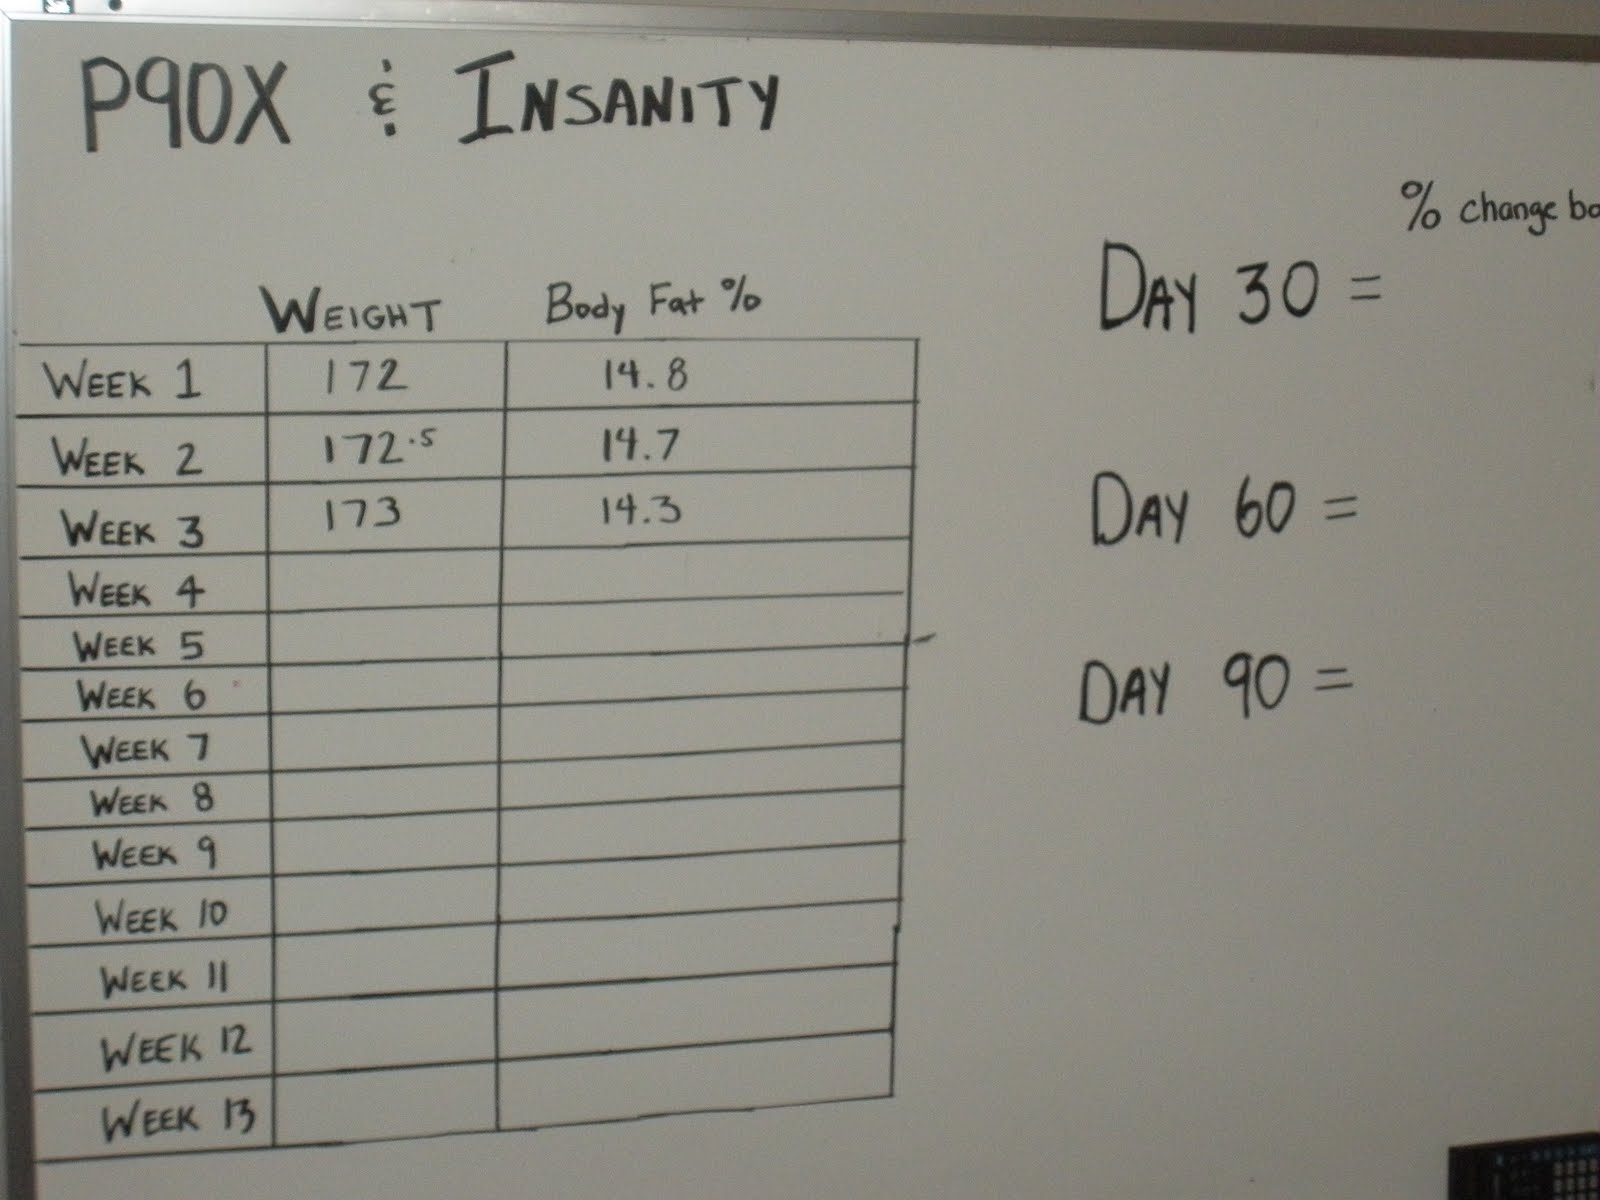 P90x Insanity Hybrid Workout